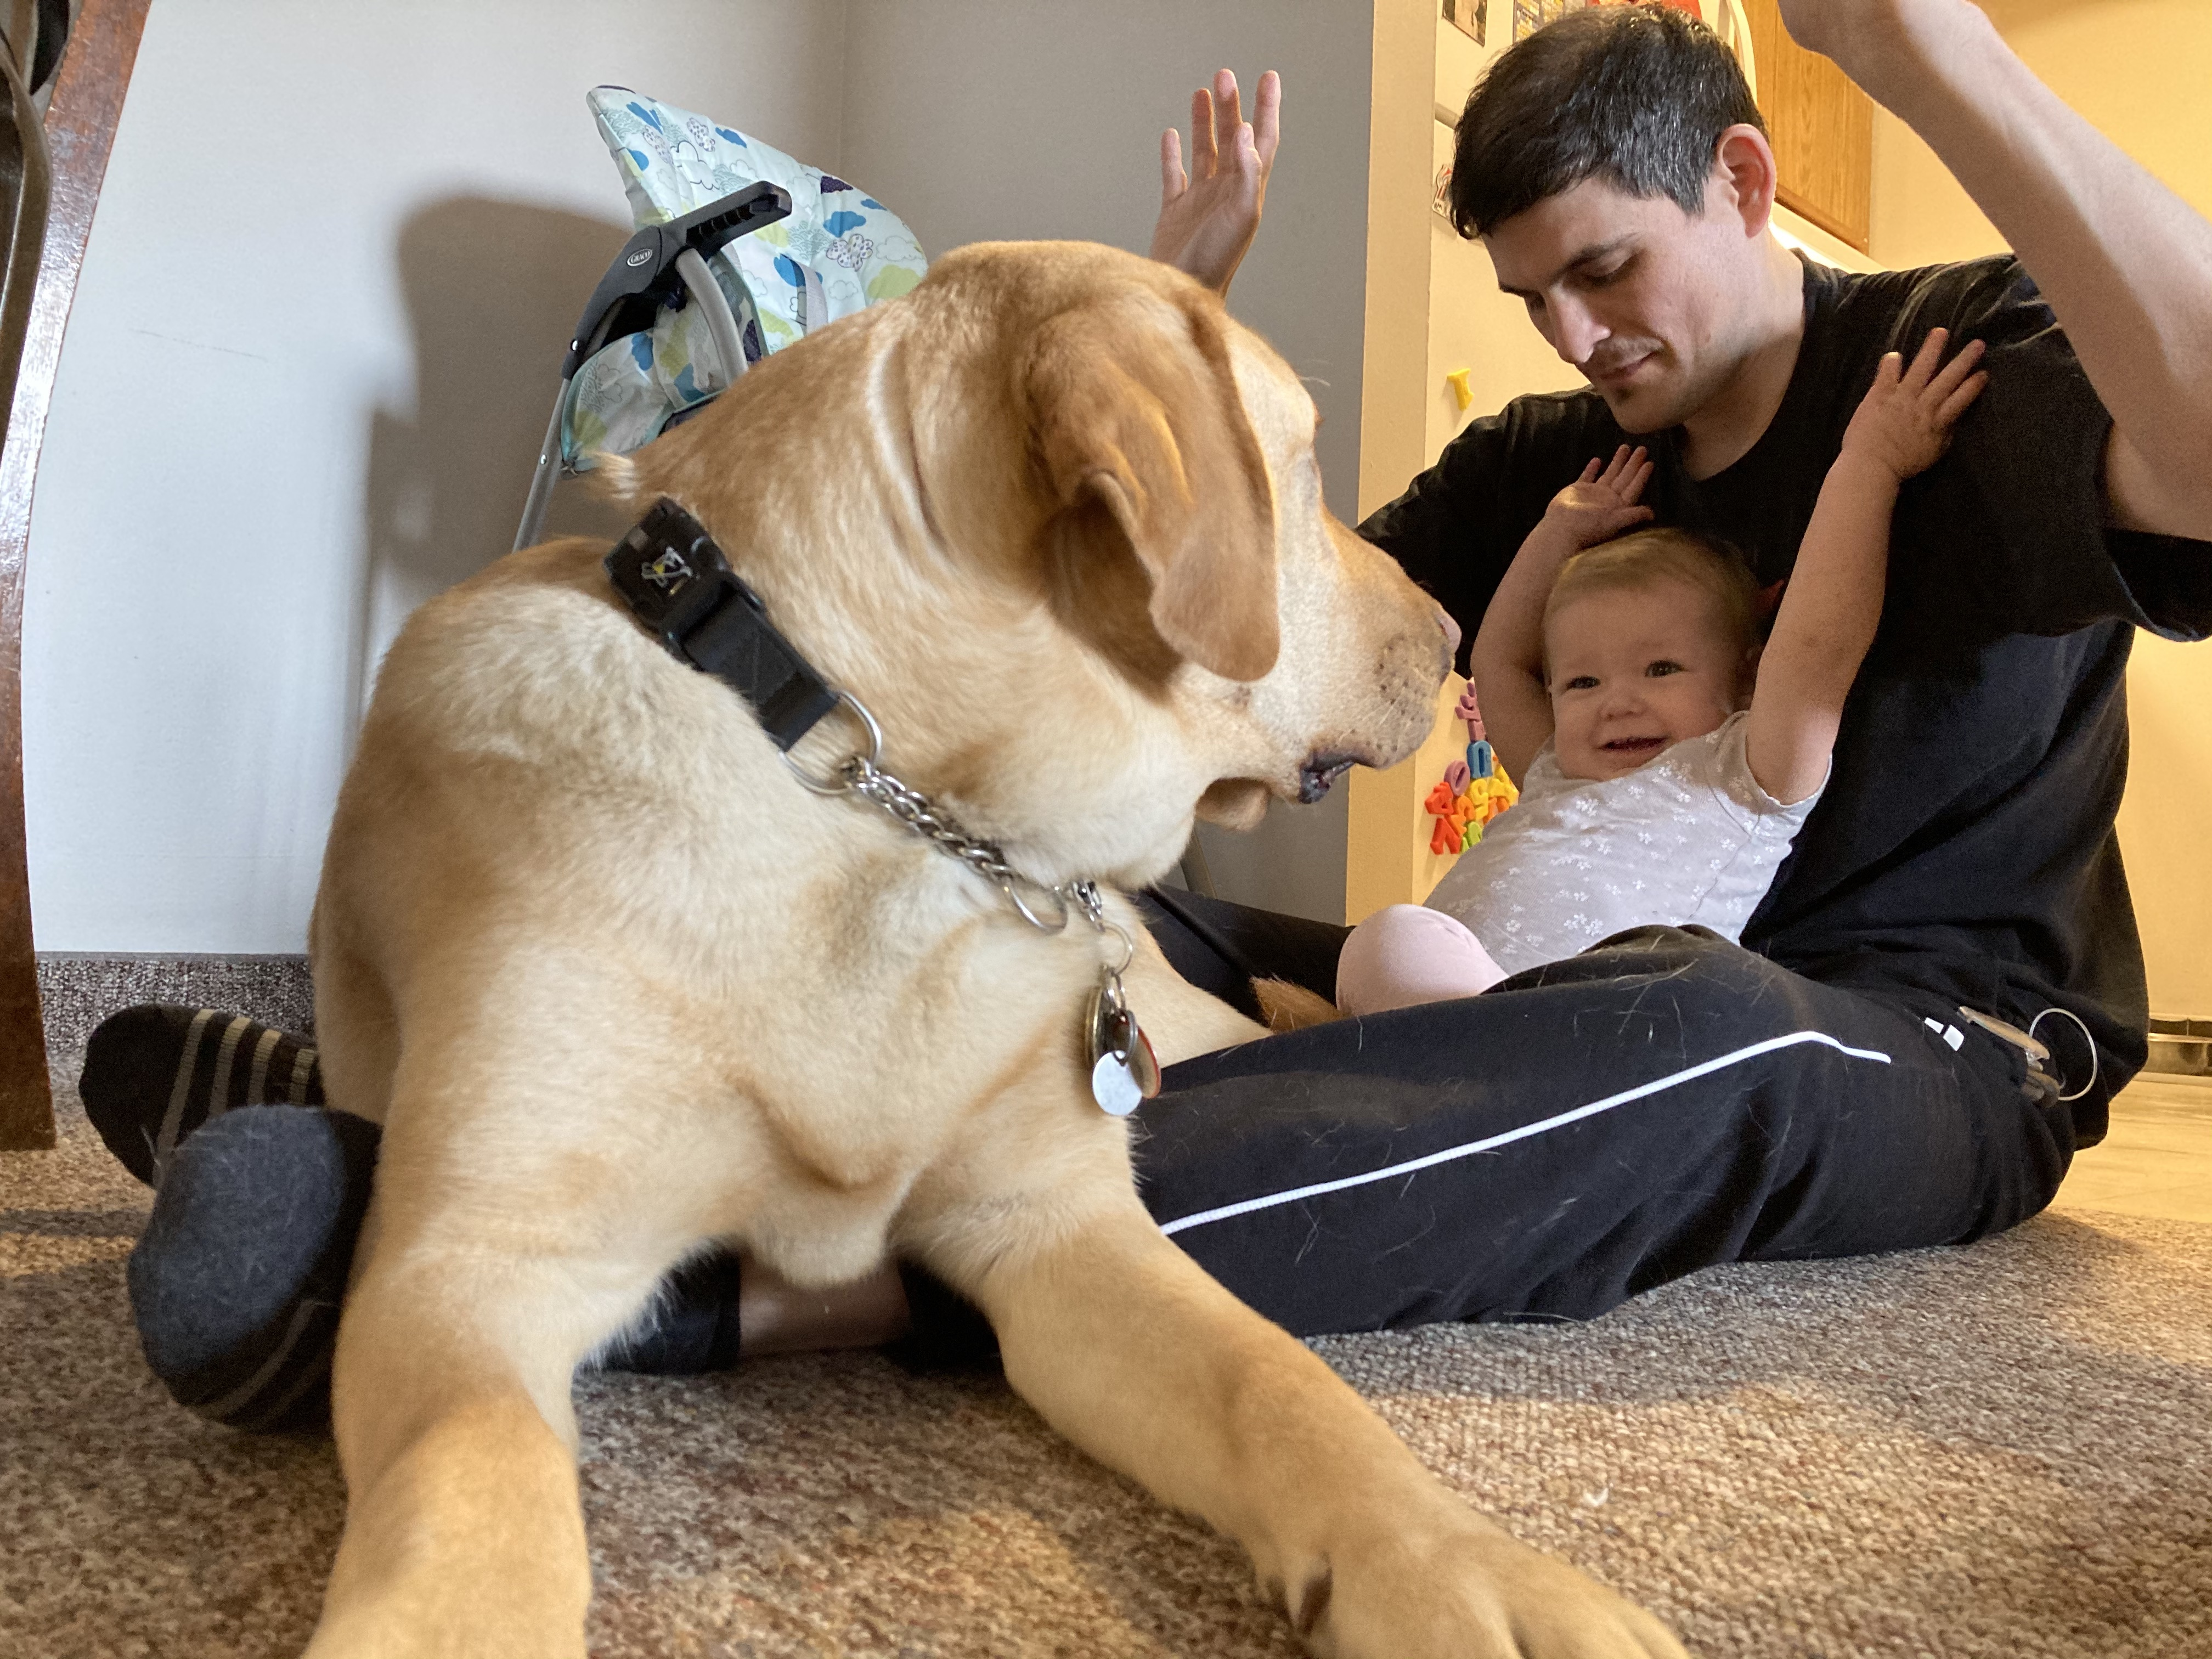 Ryan and his daughter Abigail, sitting on the floor playing with Joe, a CNIB Guide Dog.